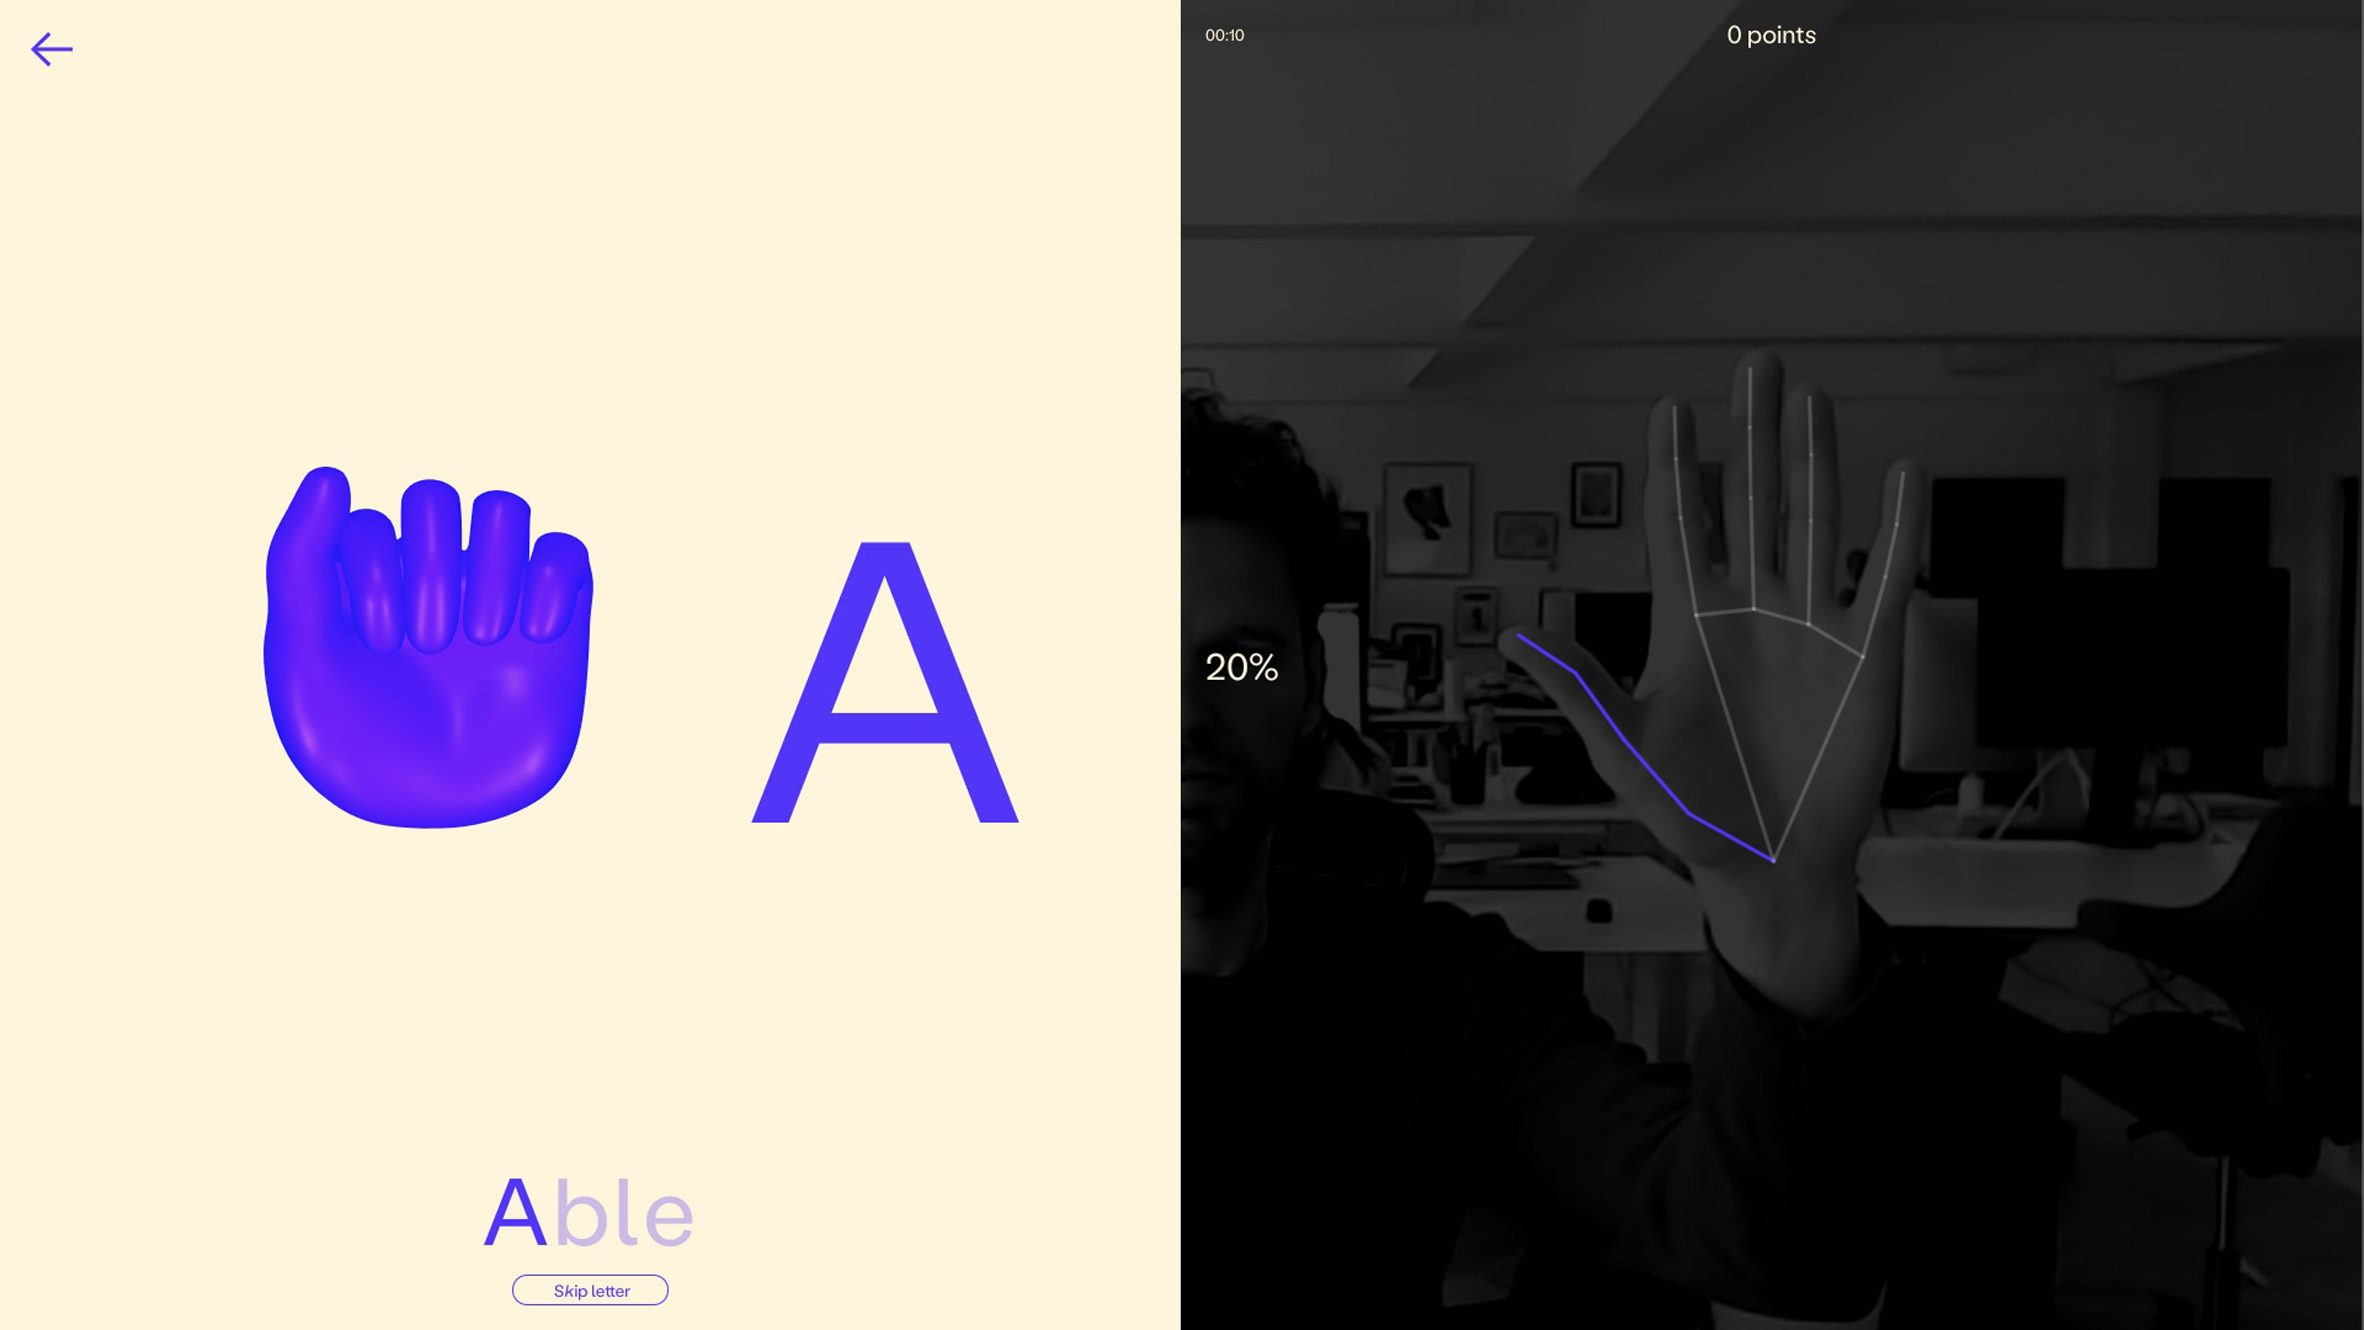 FingerspA splitscreen shows the letter A and a 3D hand in a fist salute shape on the left side and webcam view of a user's flat palm on the right